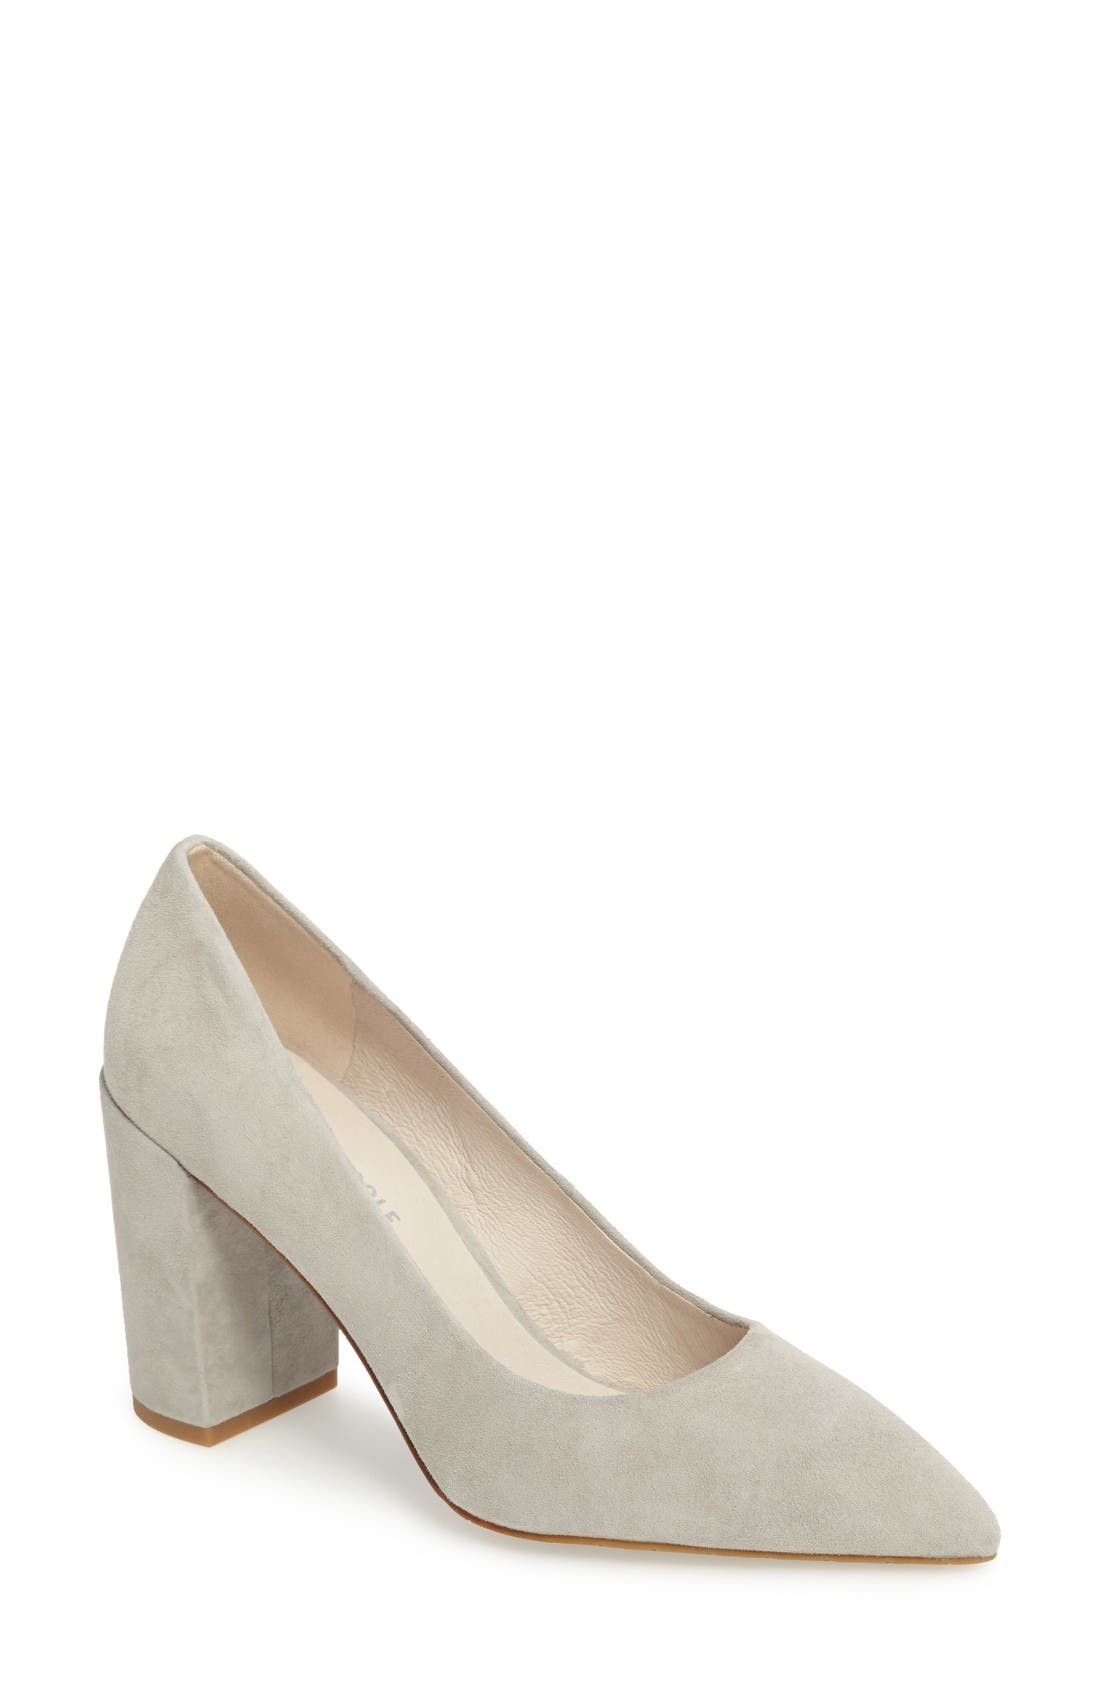 KENNETH COLE NEW YORK Margaux Pump